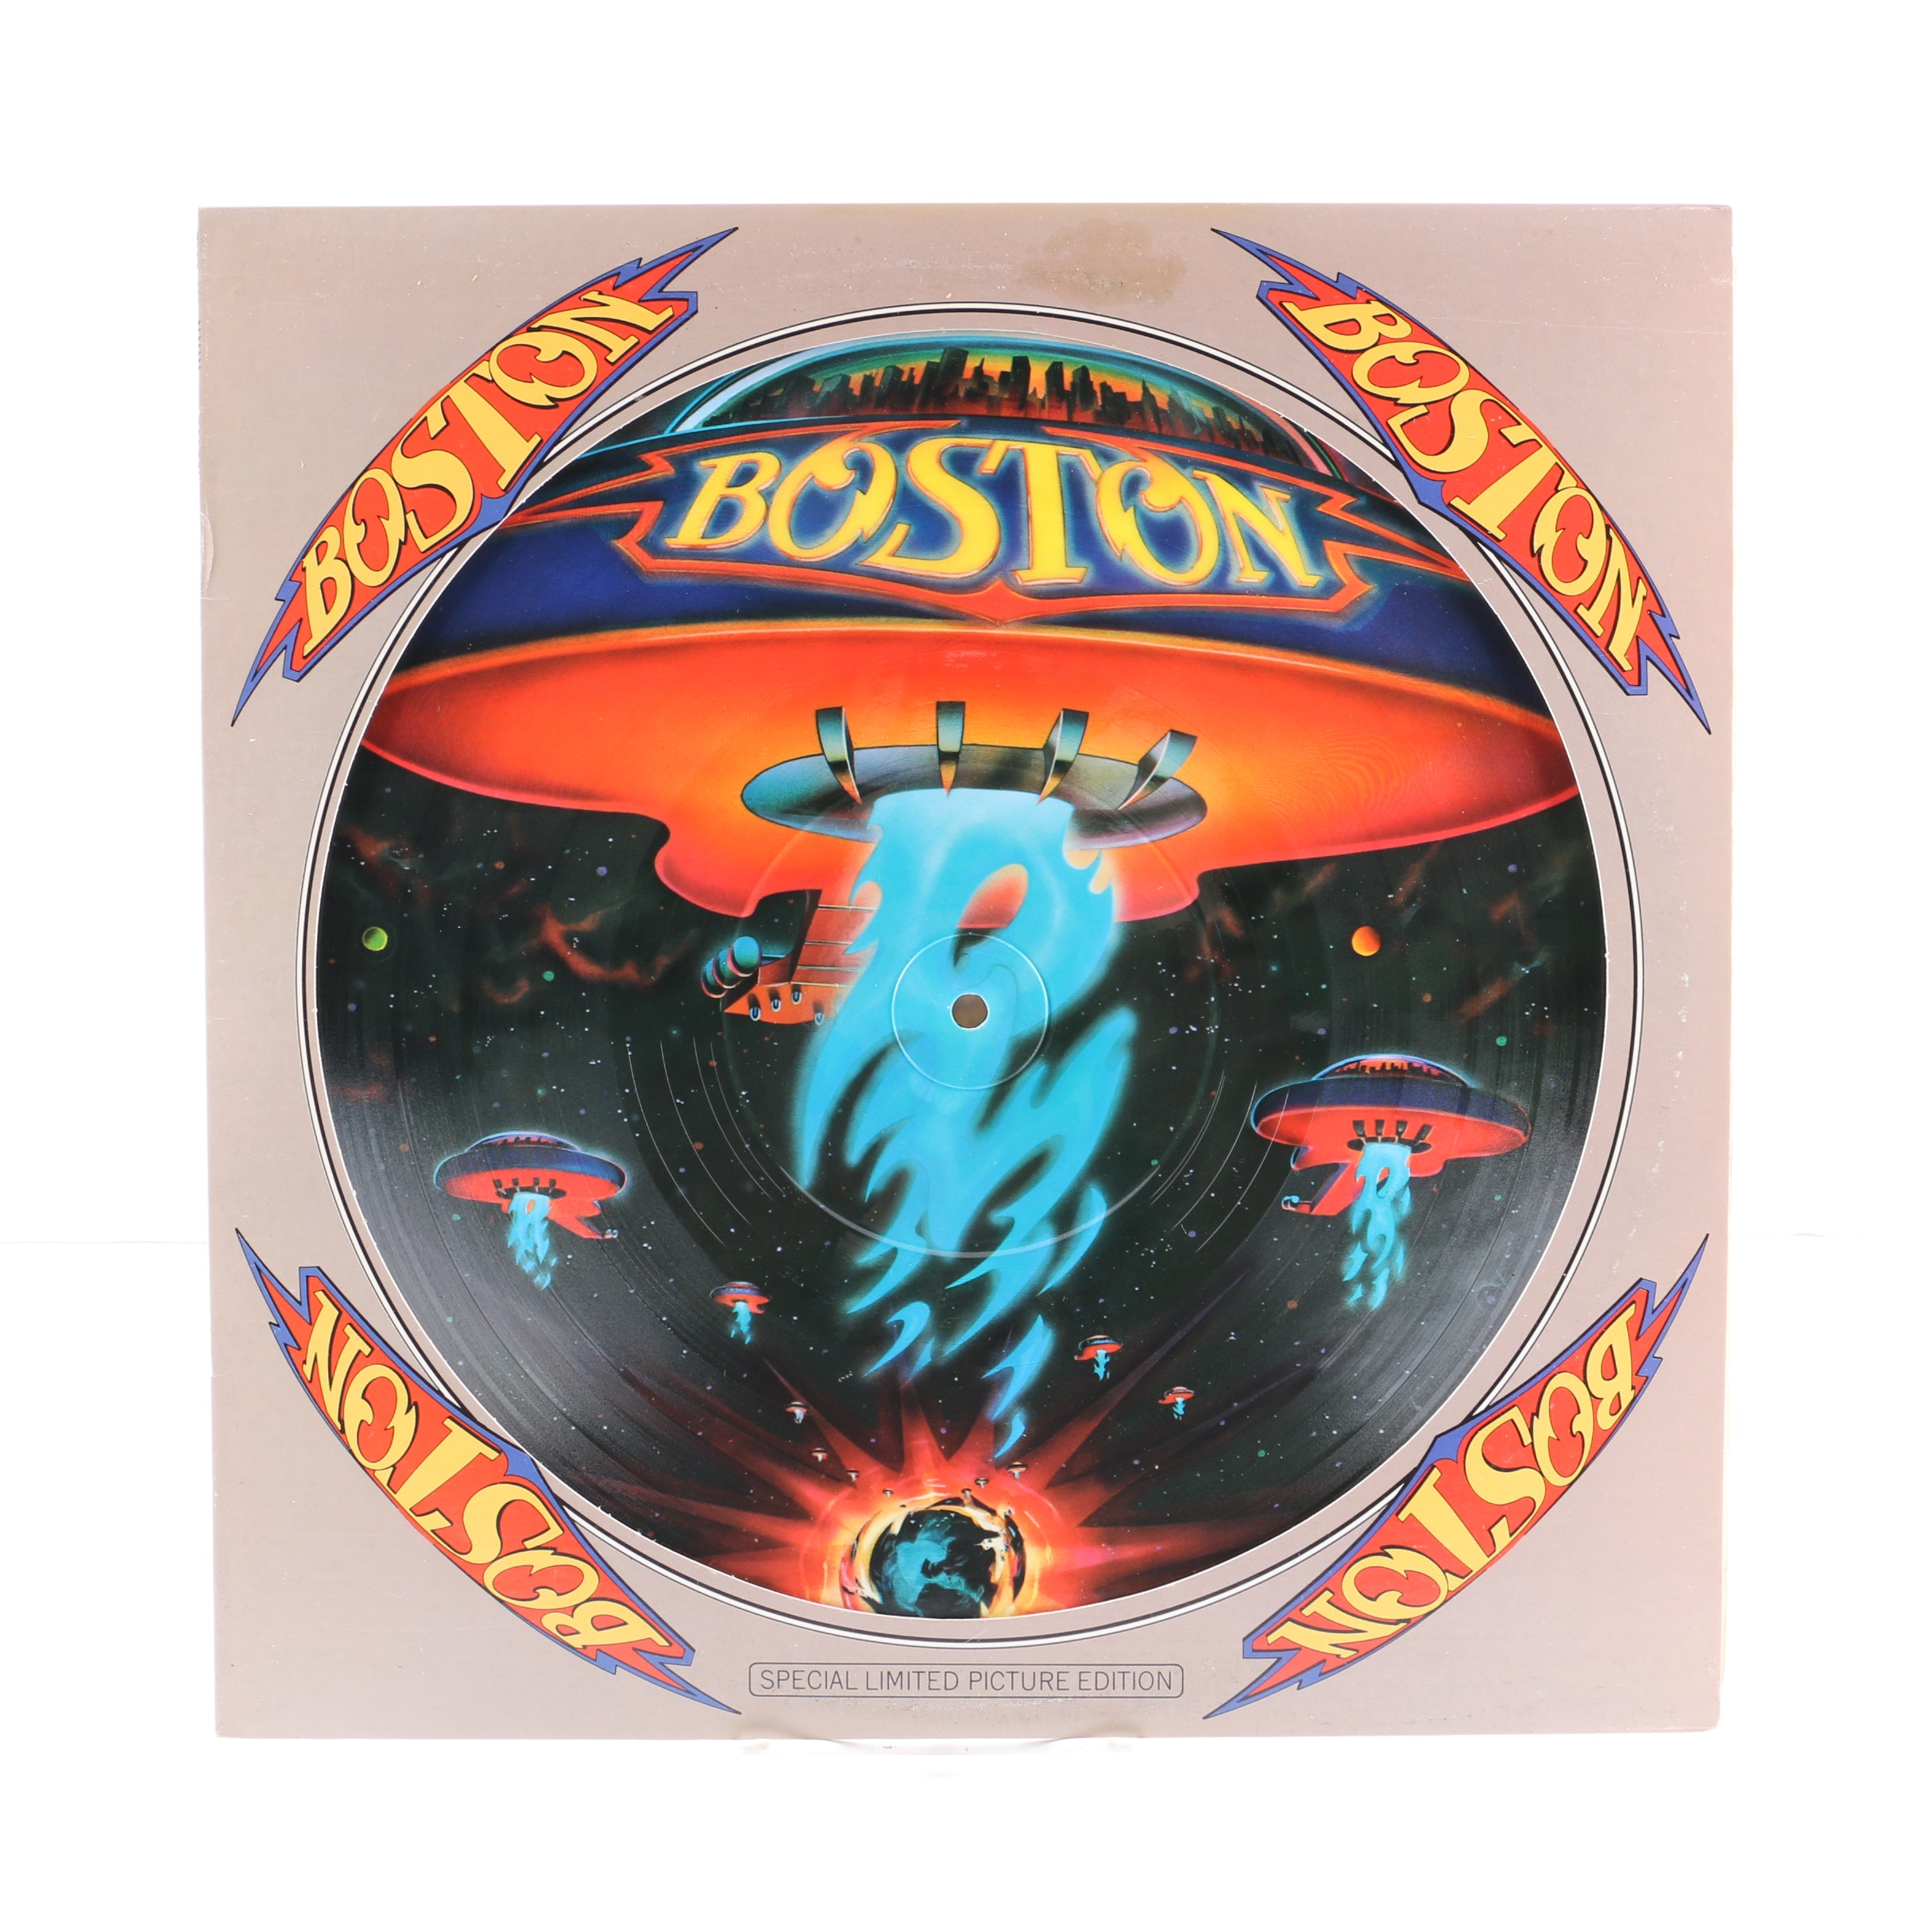 """Boston """"S/T"""" Limited Edition Picture Disc"""